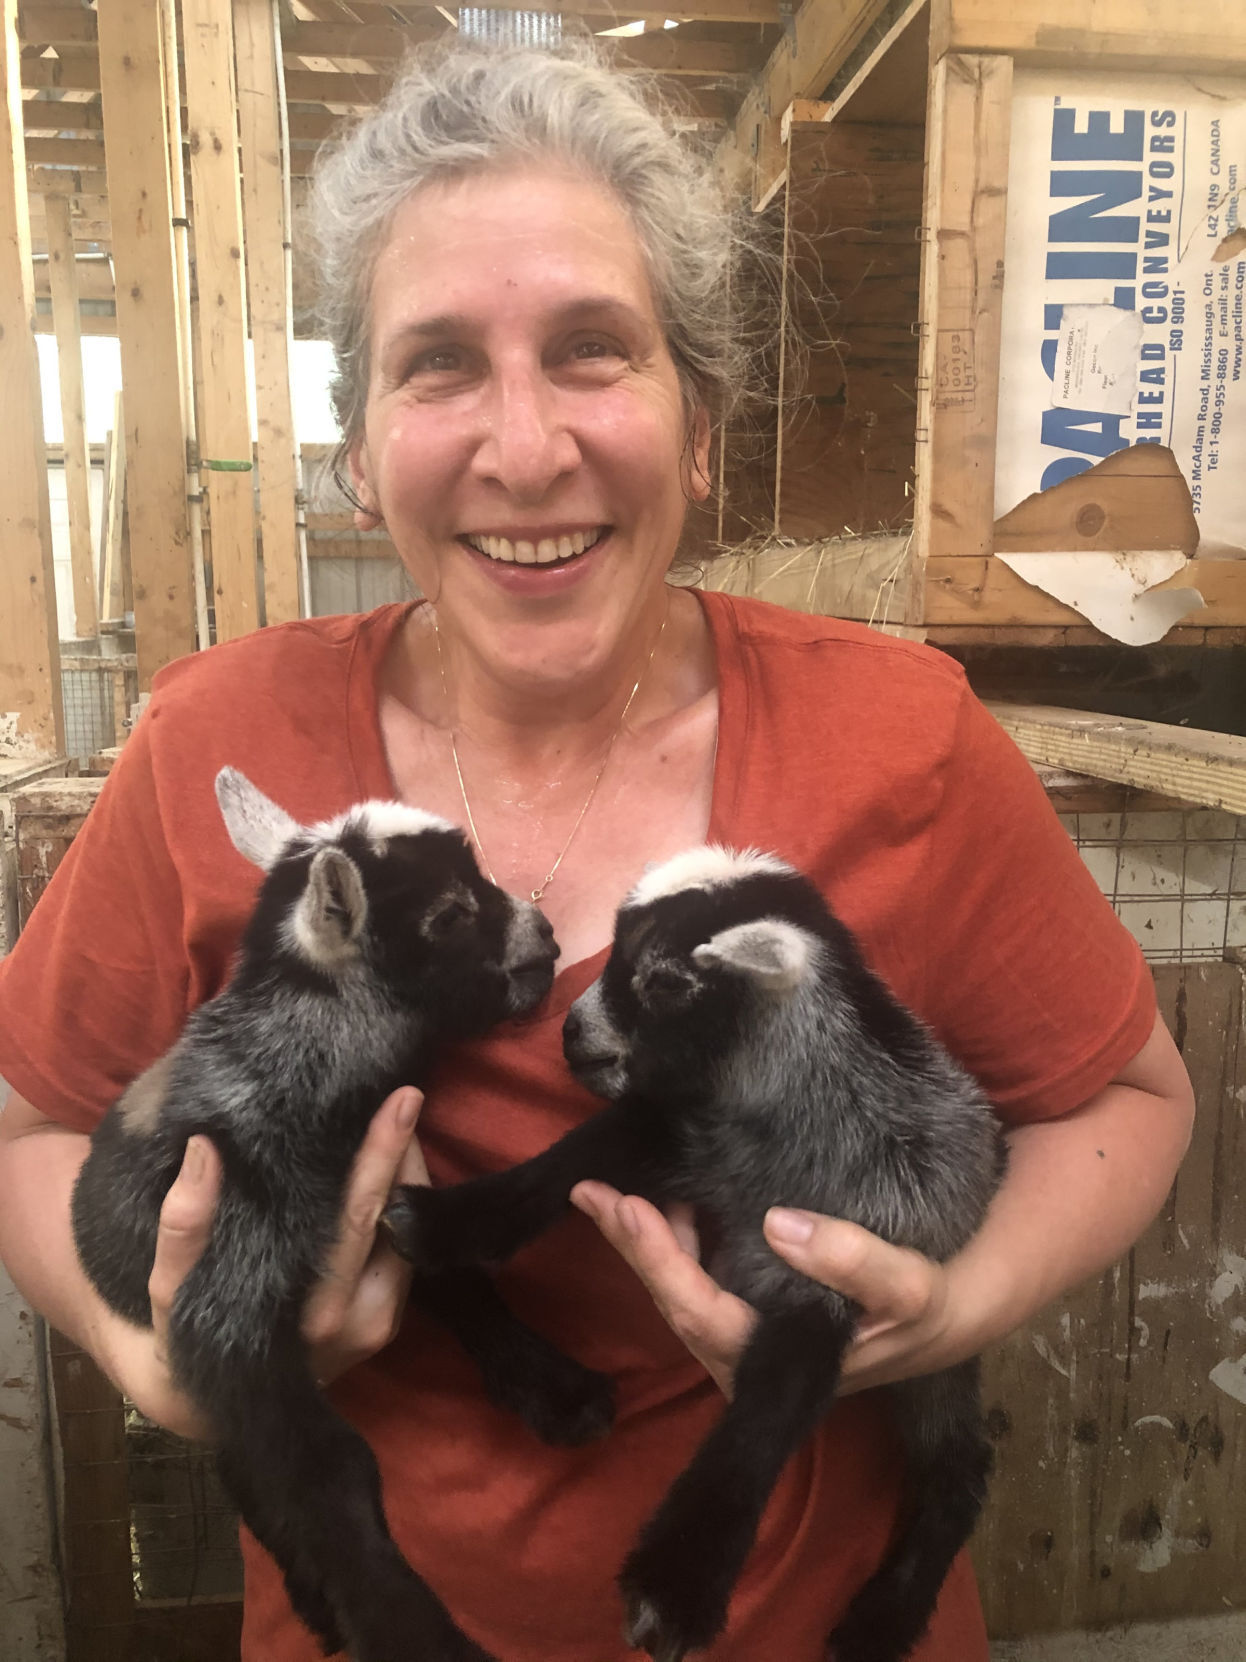 'A great life:' Scott Twp. keeps busy with hobby farm